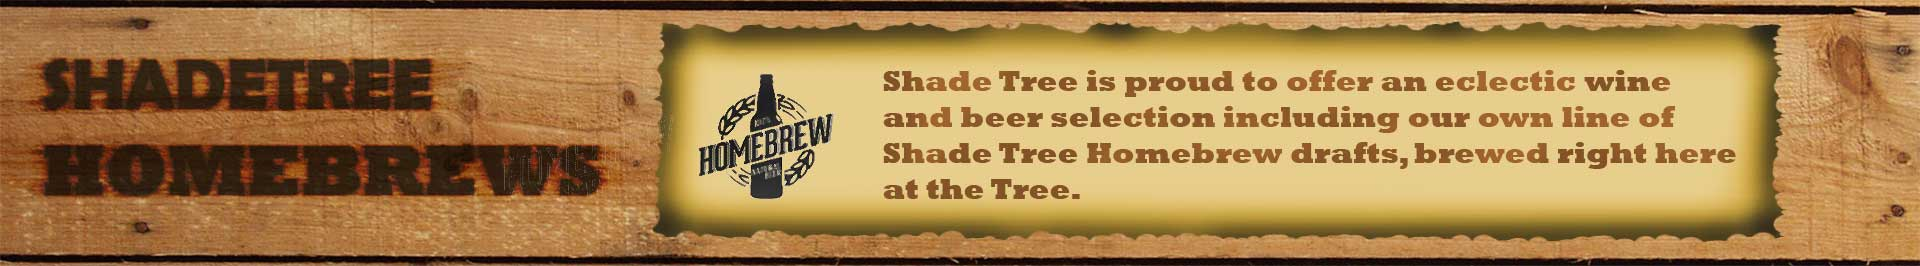 ShadeTree HomeBrews